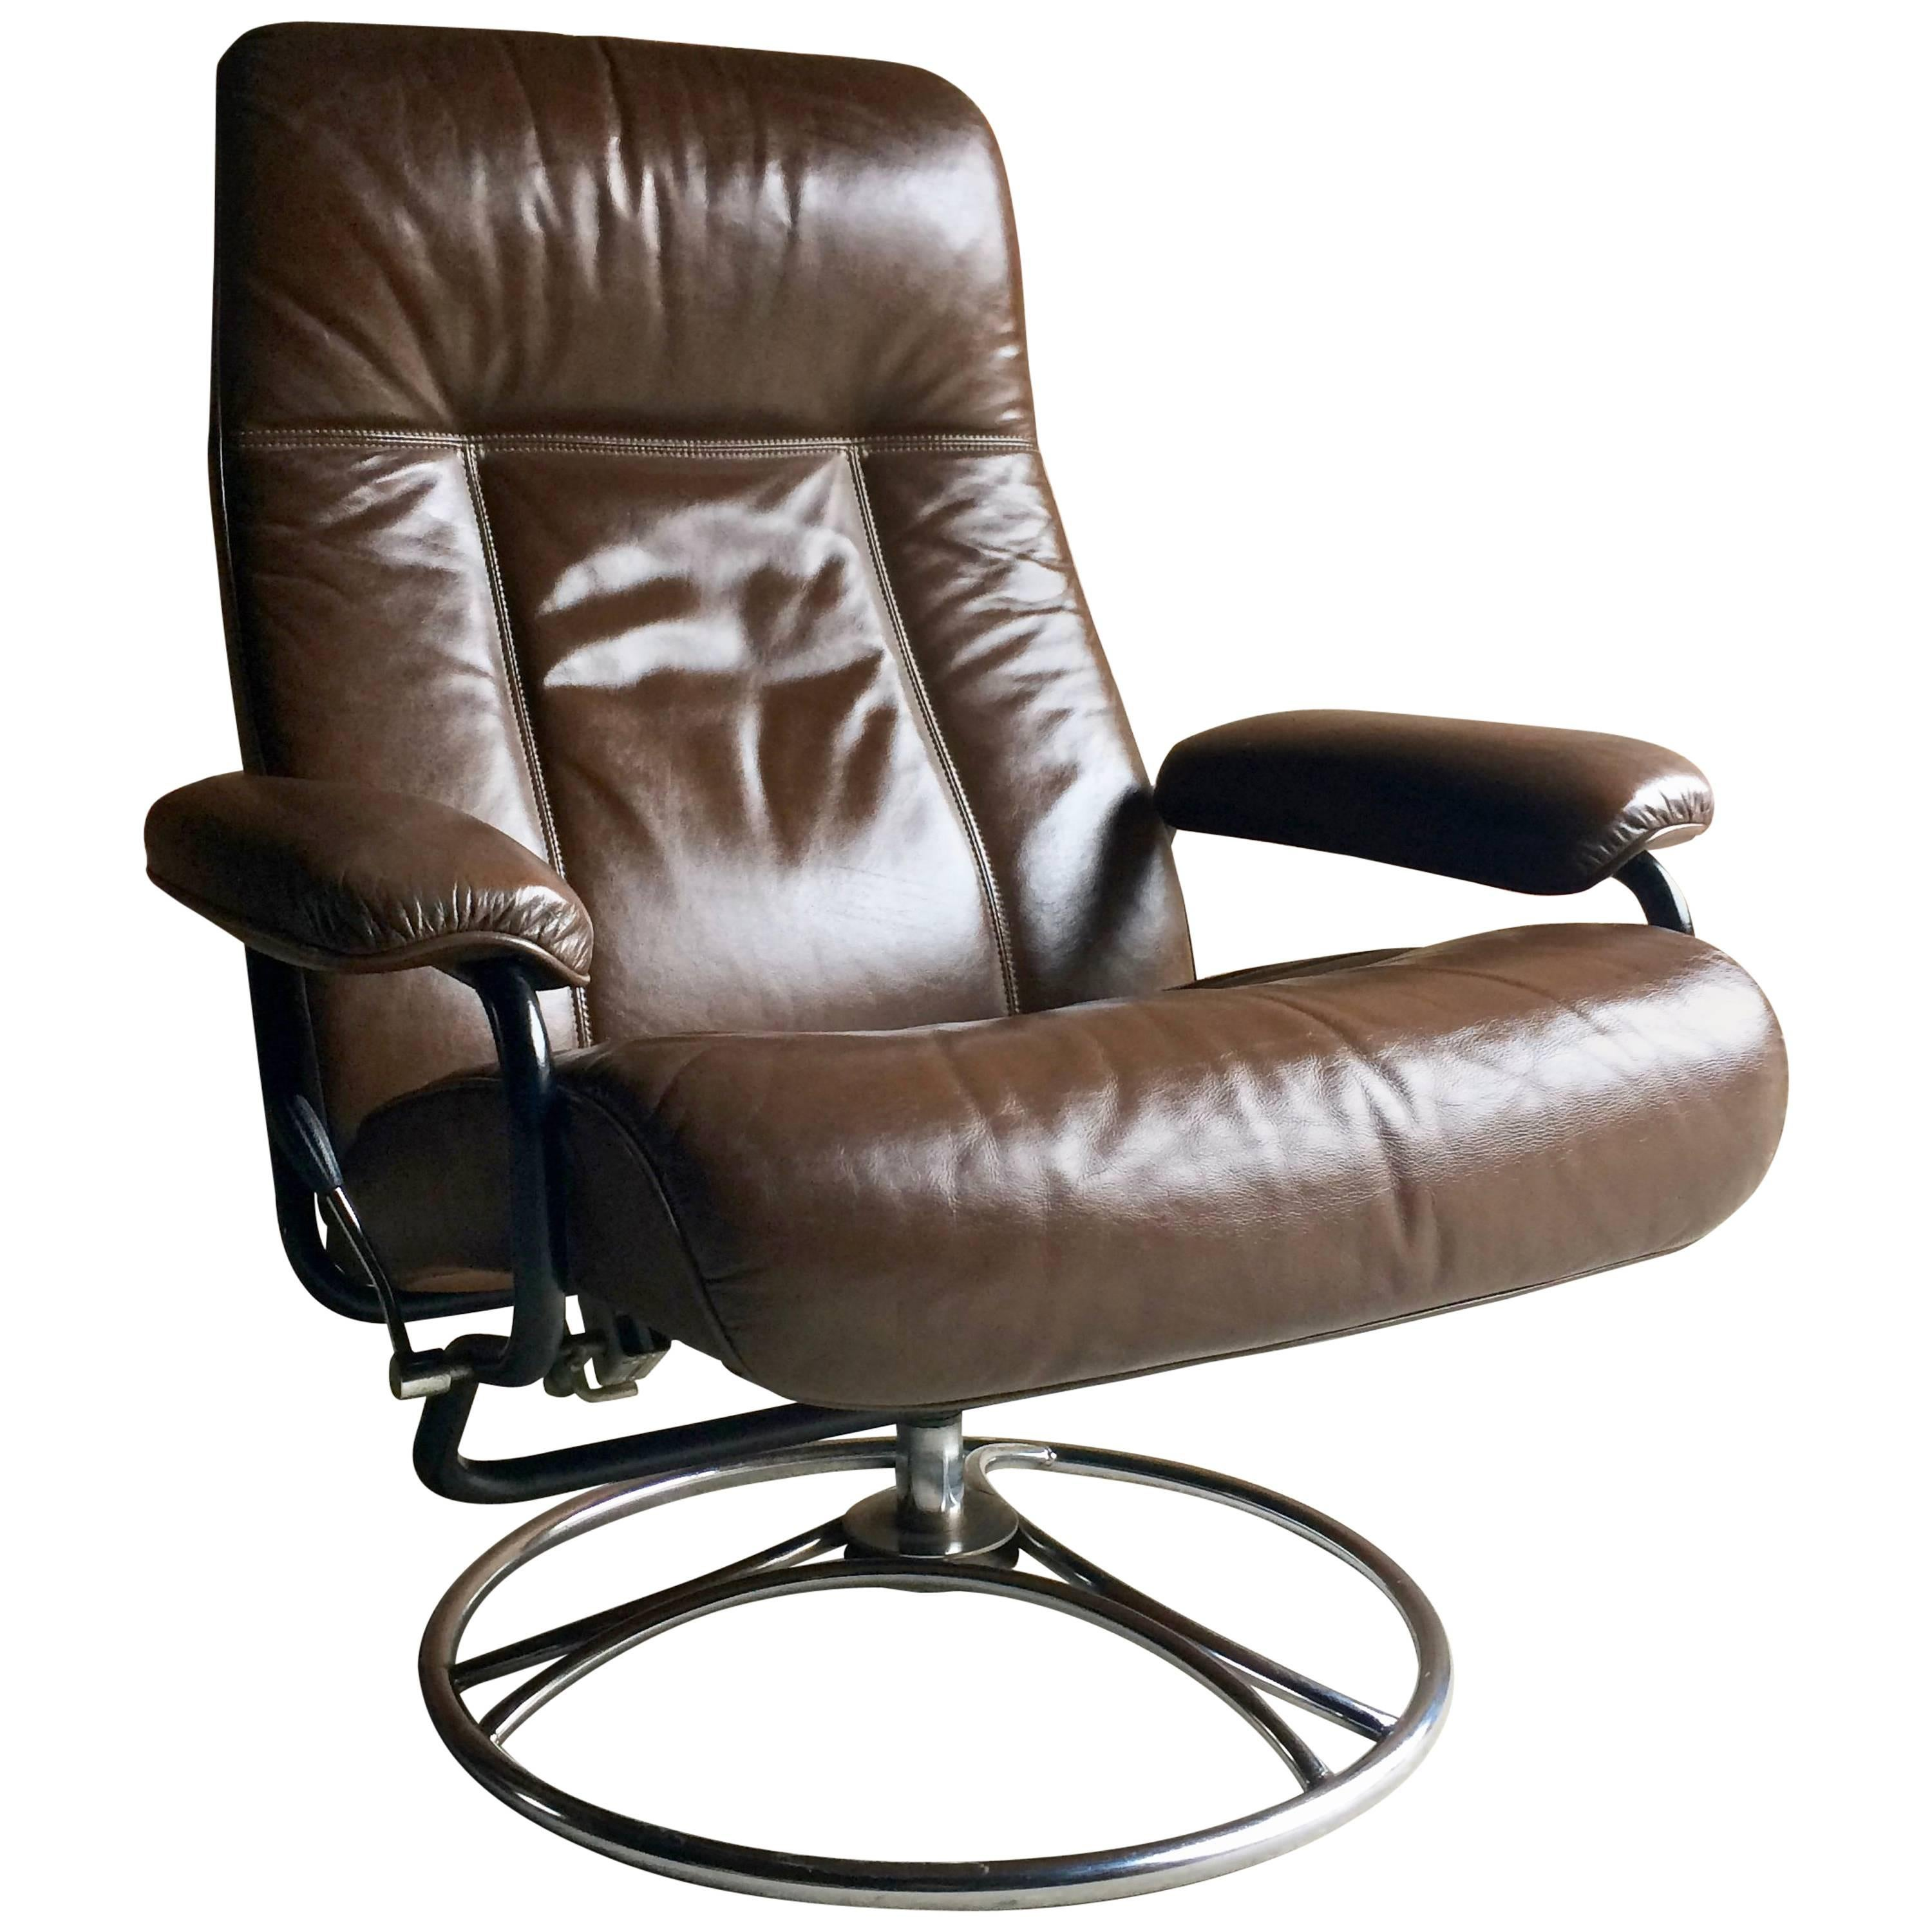 Swedish Brown Leather Armchair Lounge Reclining Swivel Söderbergs, 1970s